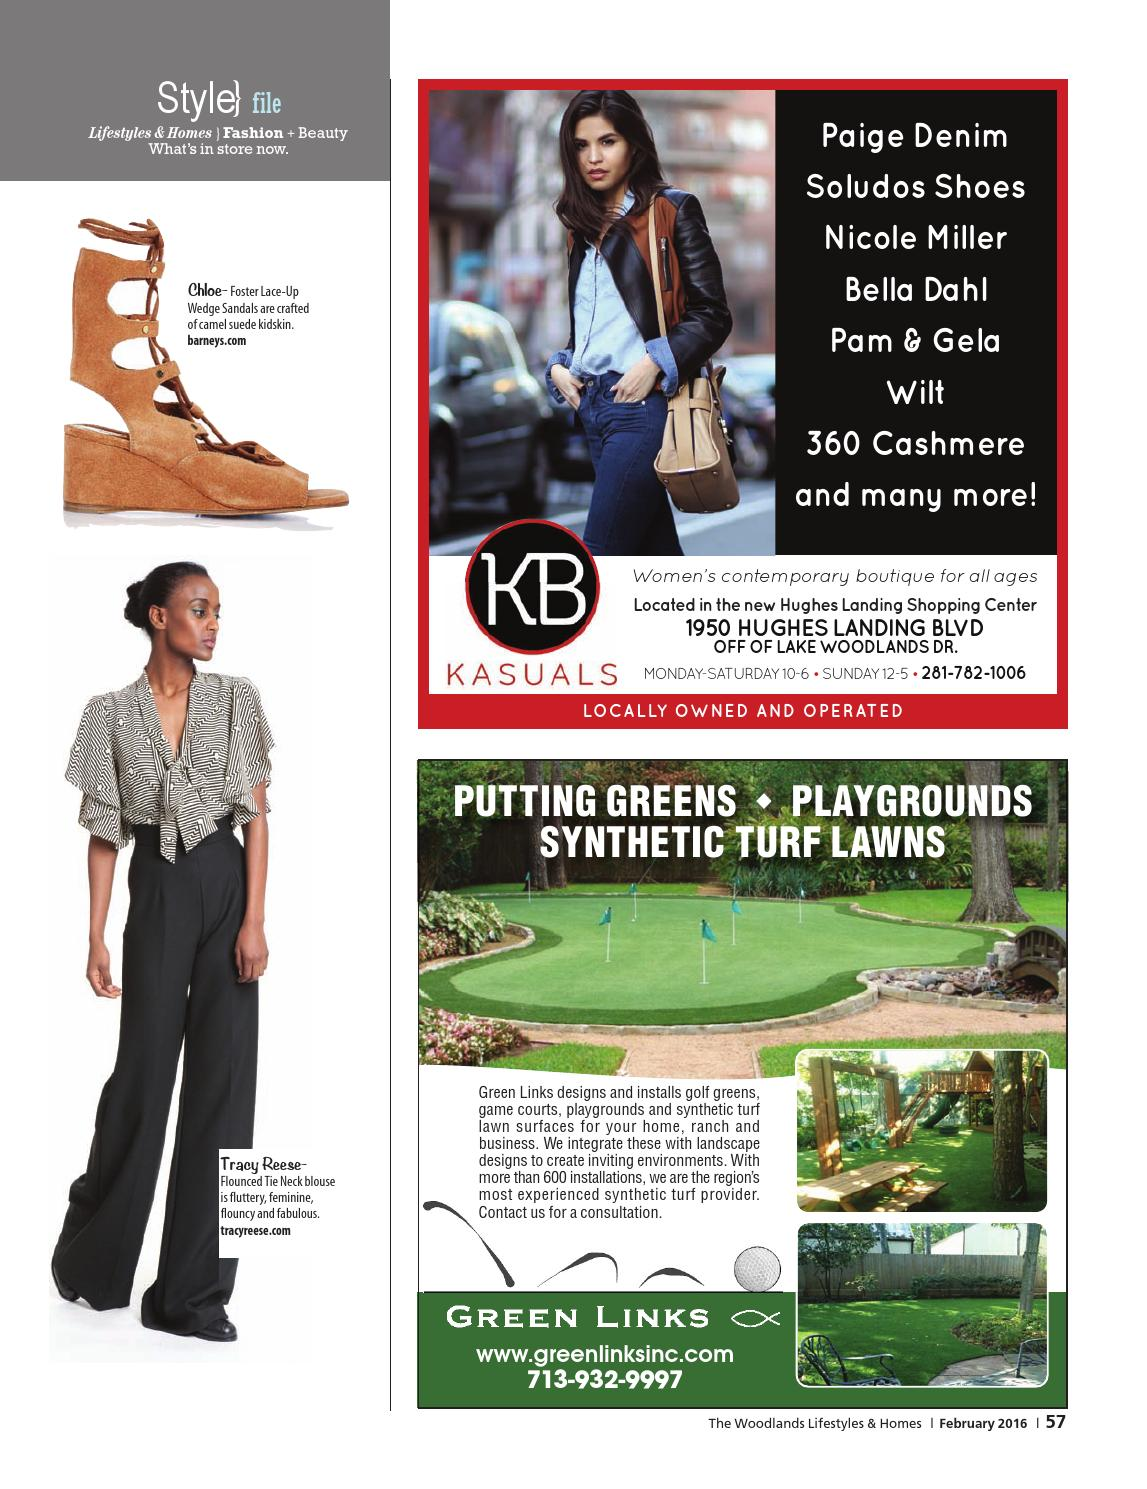 6b61c603abc The Woodlands Lifestyles & Homes February 2016 by Lifestyles & Homes  Magazines/Fort Bend Publishing - issuu